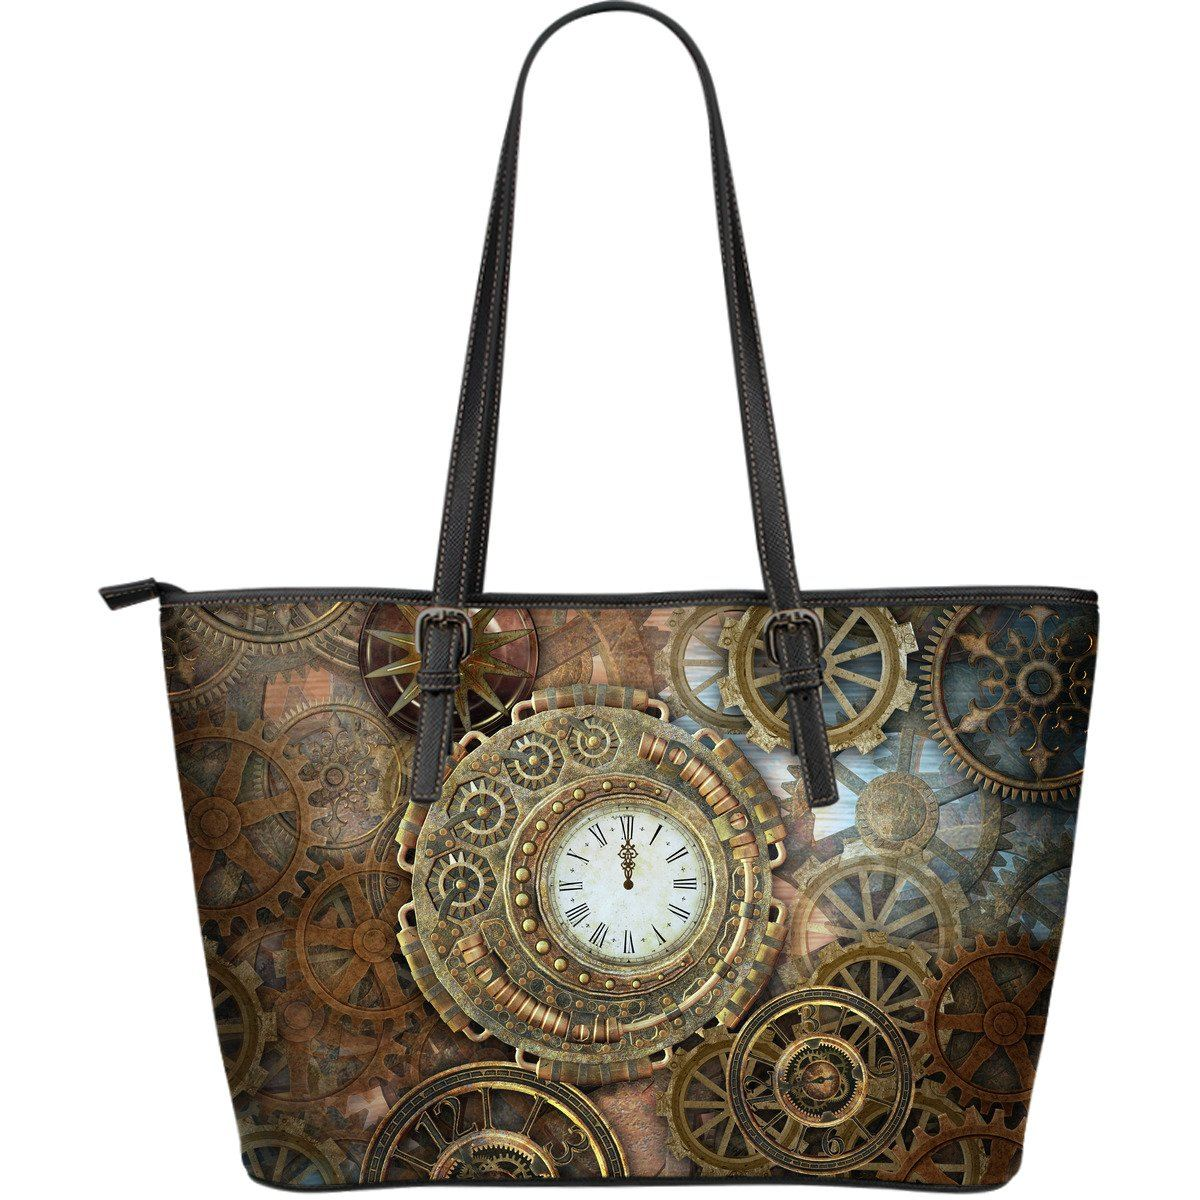 Steampunk Clocks Large Leather Tote Bag - Rebels Depot